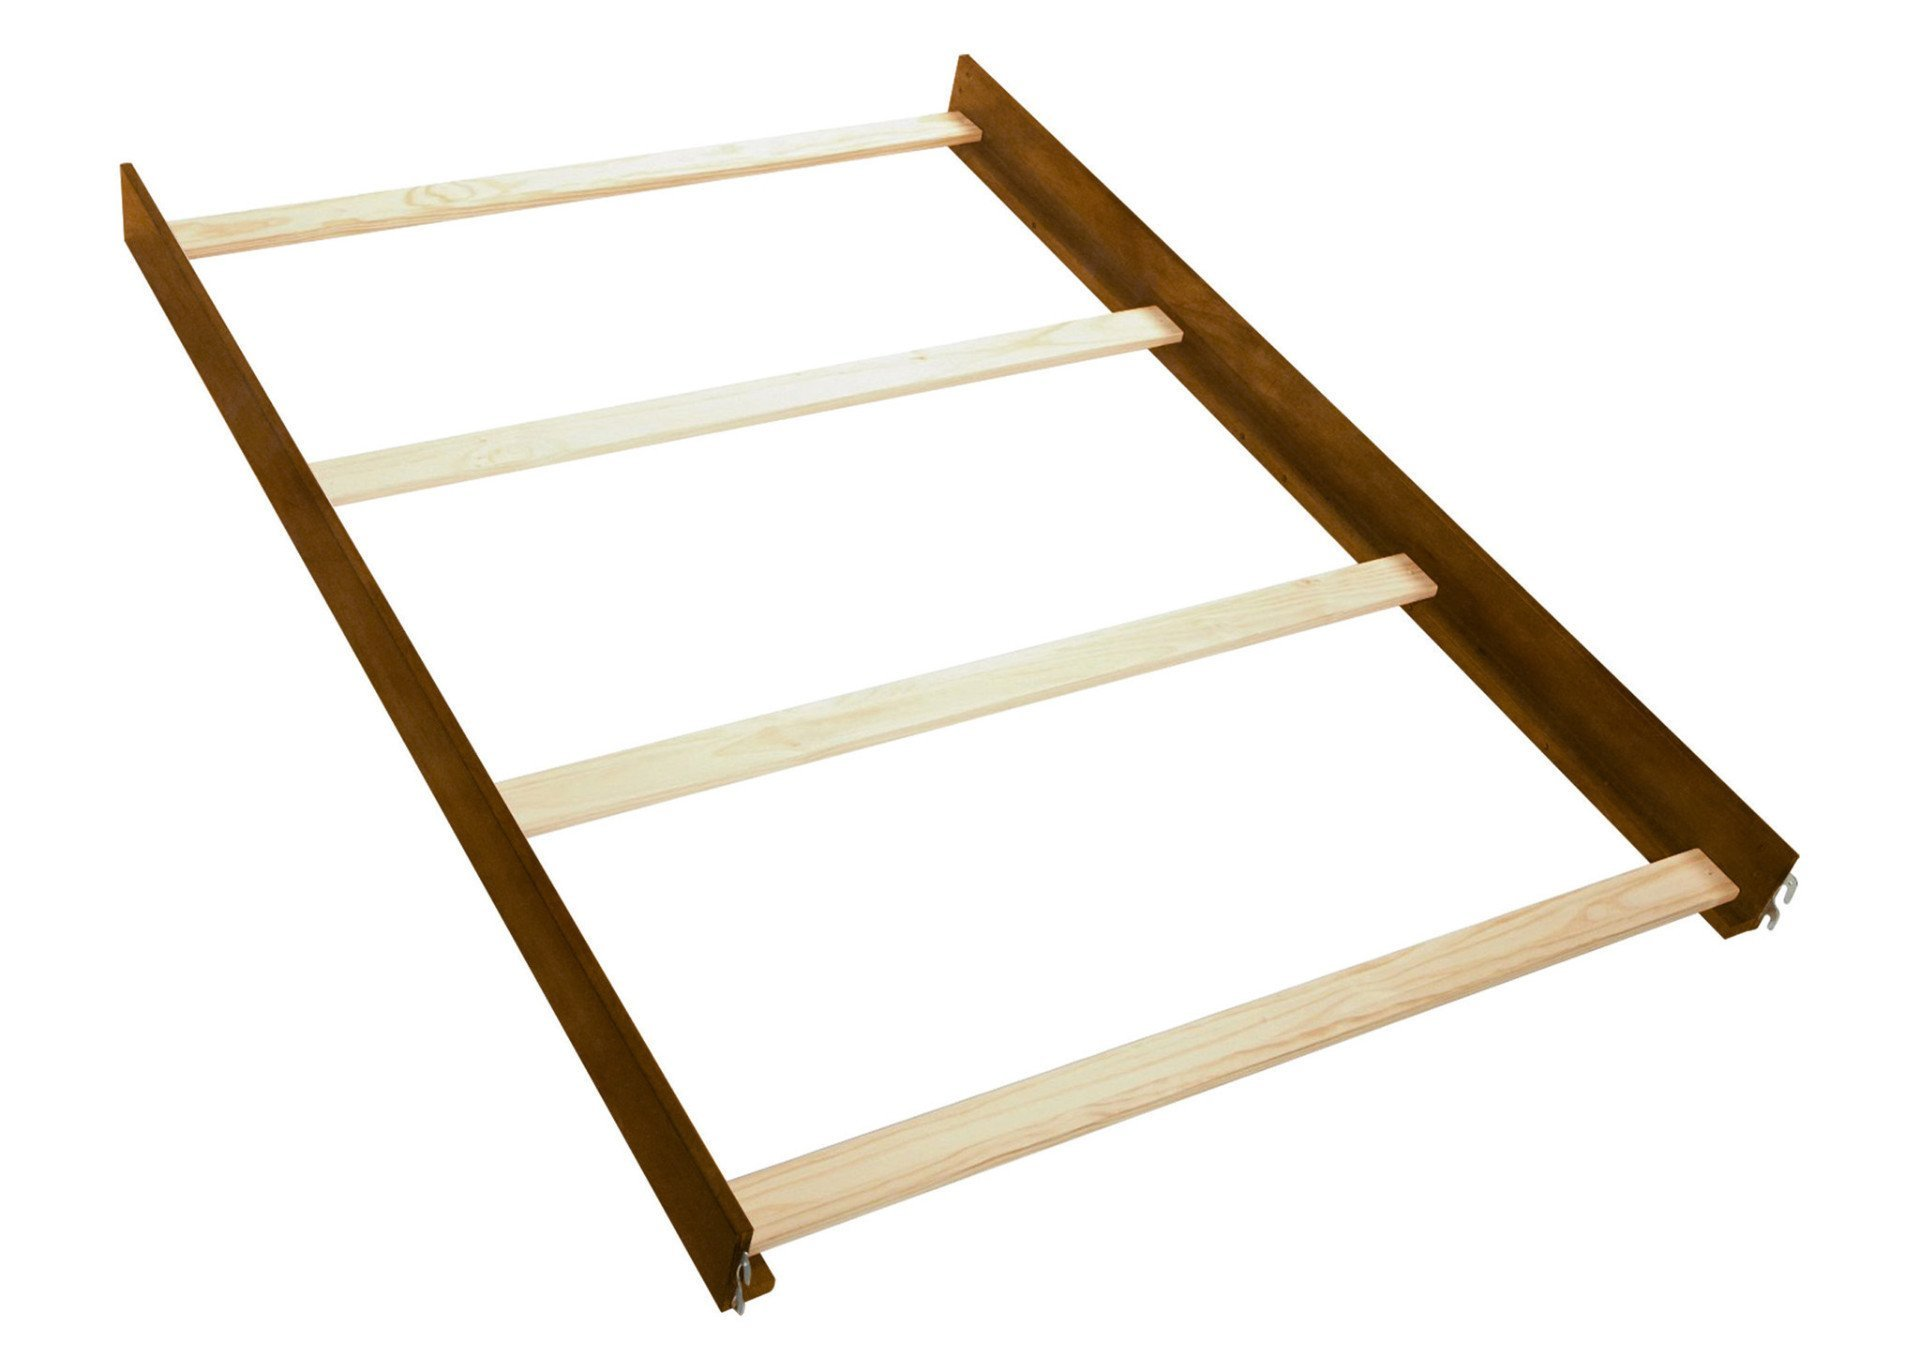 DISCOUNTED! - Solid Wood Baby Cache Crib Full Size Conversion Kit Bed Rails - Cinnamon